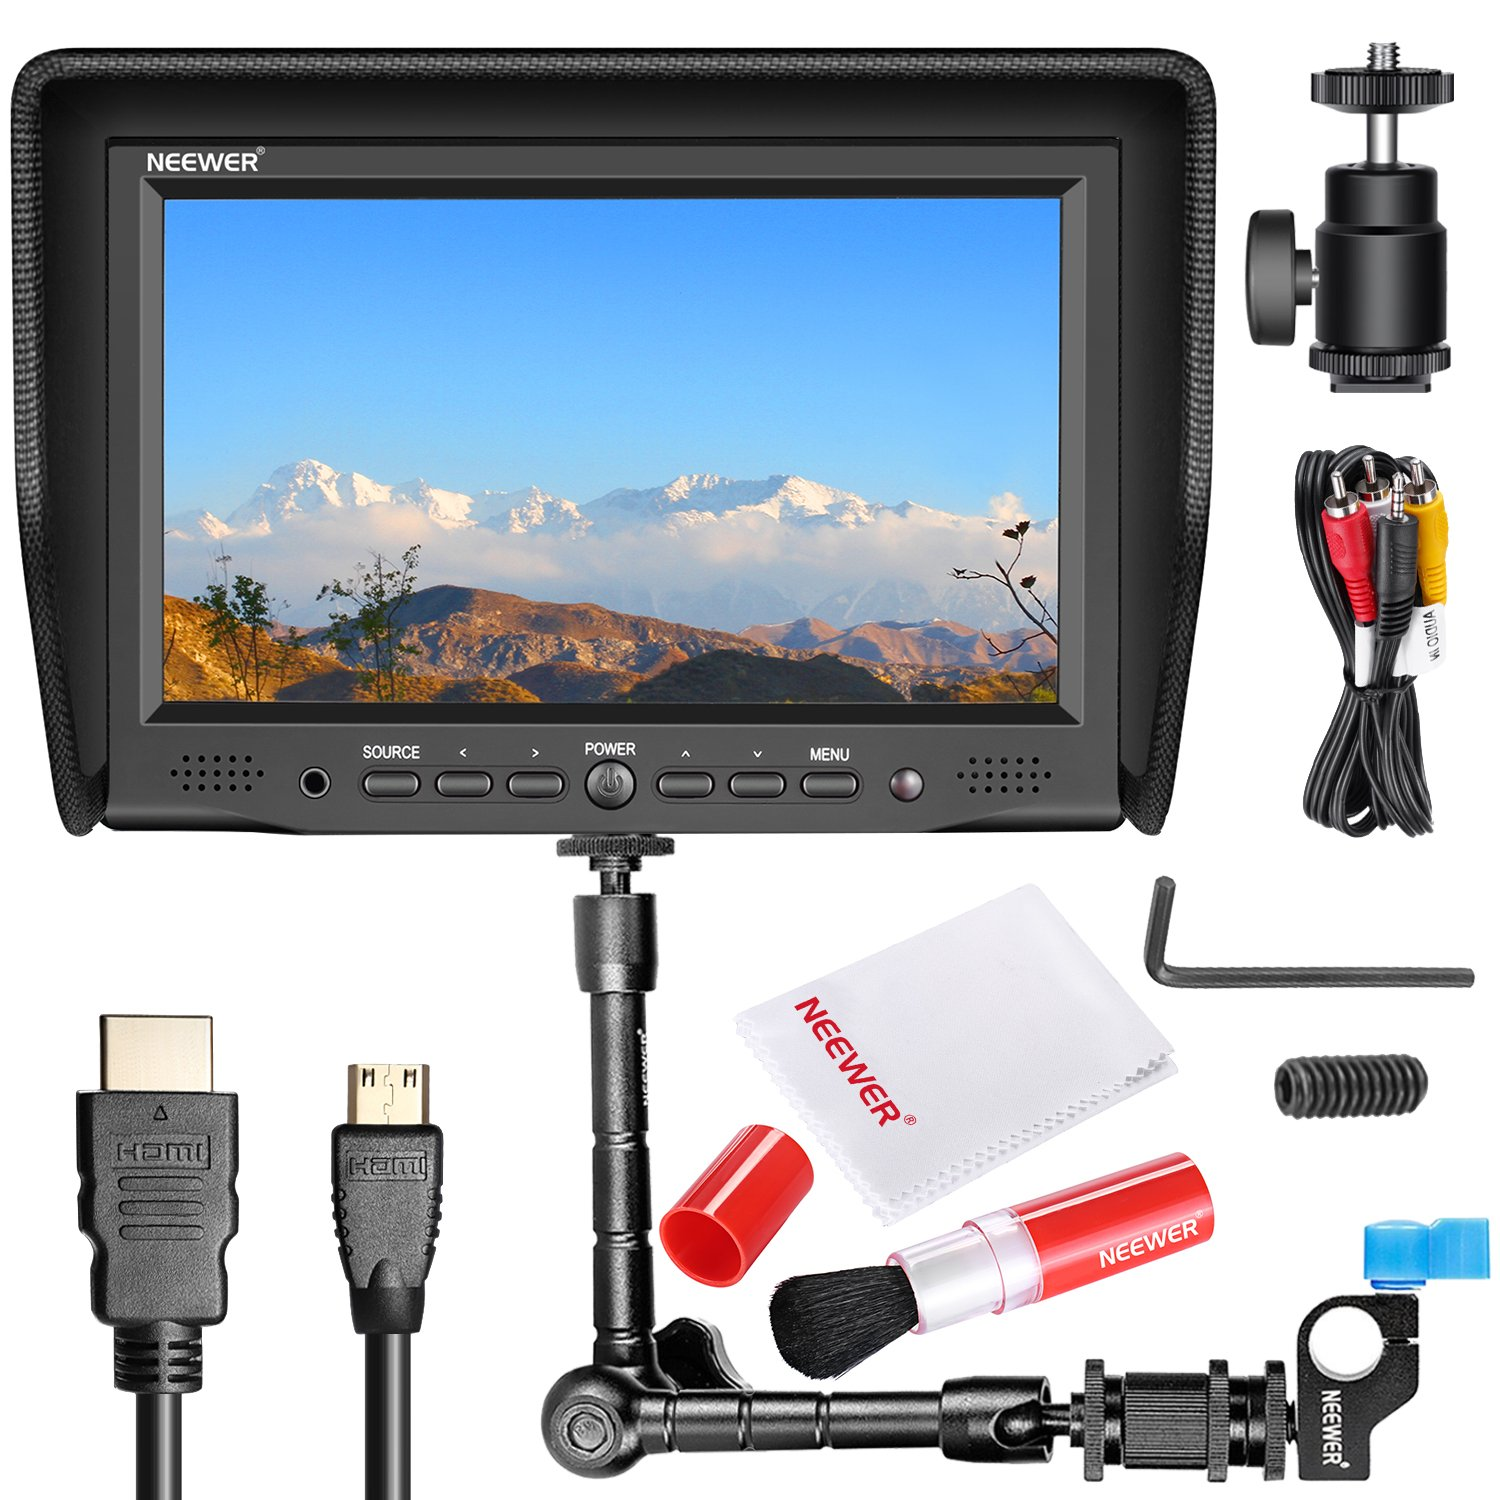 Neewer NW-708M 7 inches On-Camera Field Monitor Kit:800x480 High Resolution IPS Screen Monitor, 11 inches Magic Arm with Rod Clamp, Cleaning Kit Includes Lens Brush and Cleaning Cloth 90090277